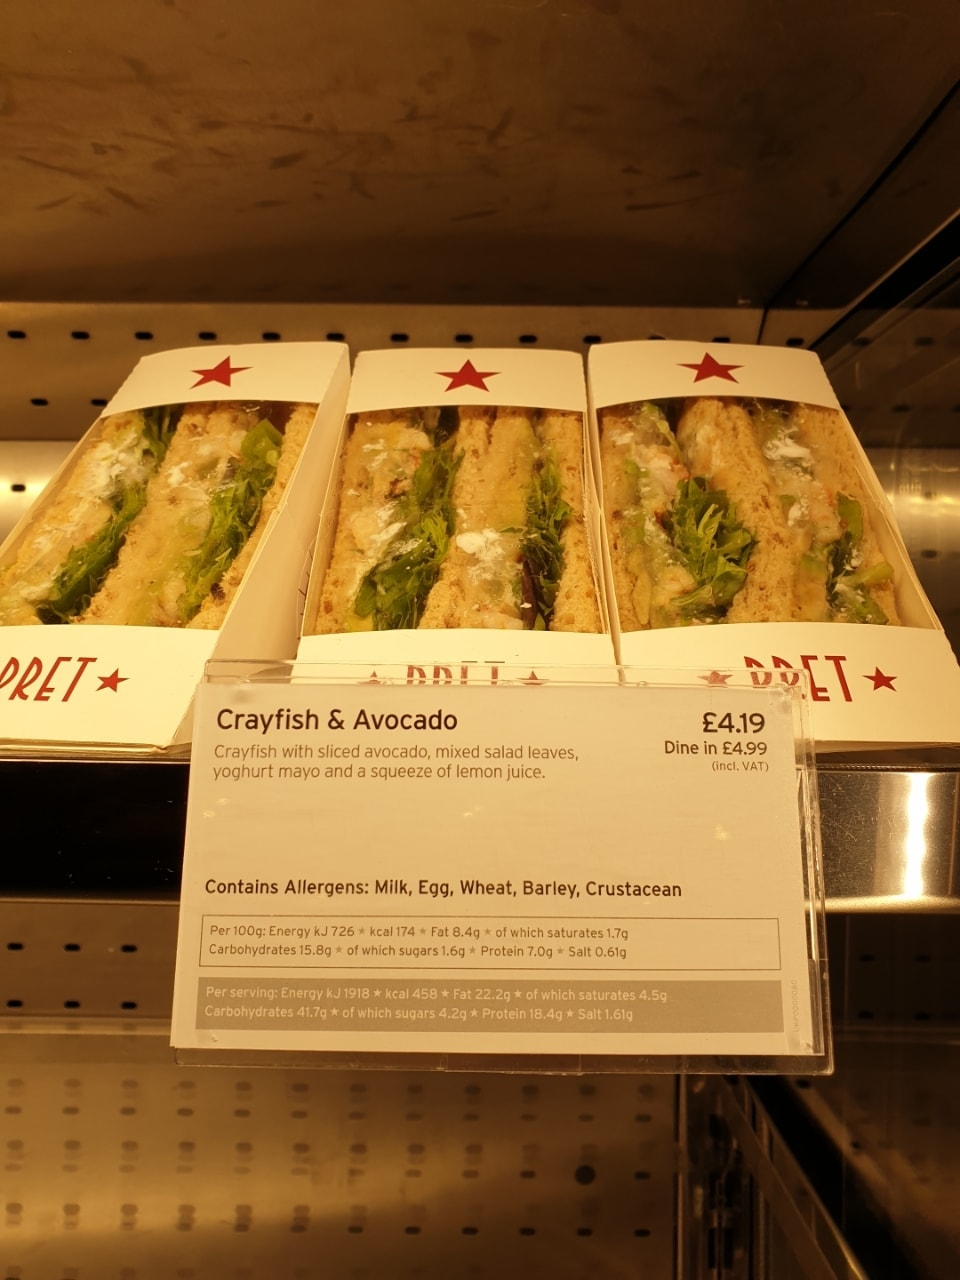 Pret meaty sandwiches